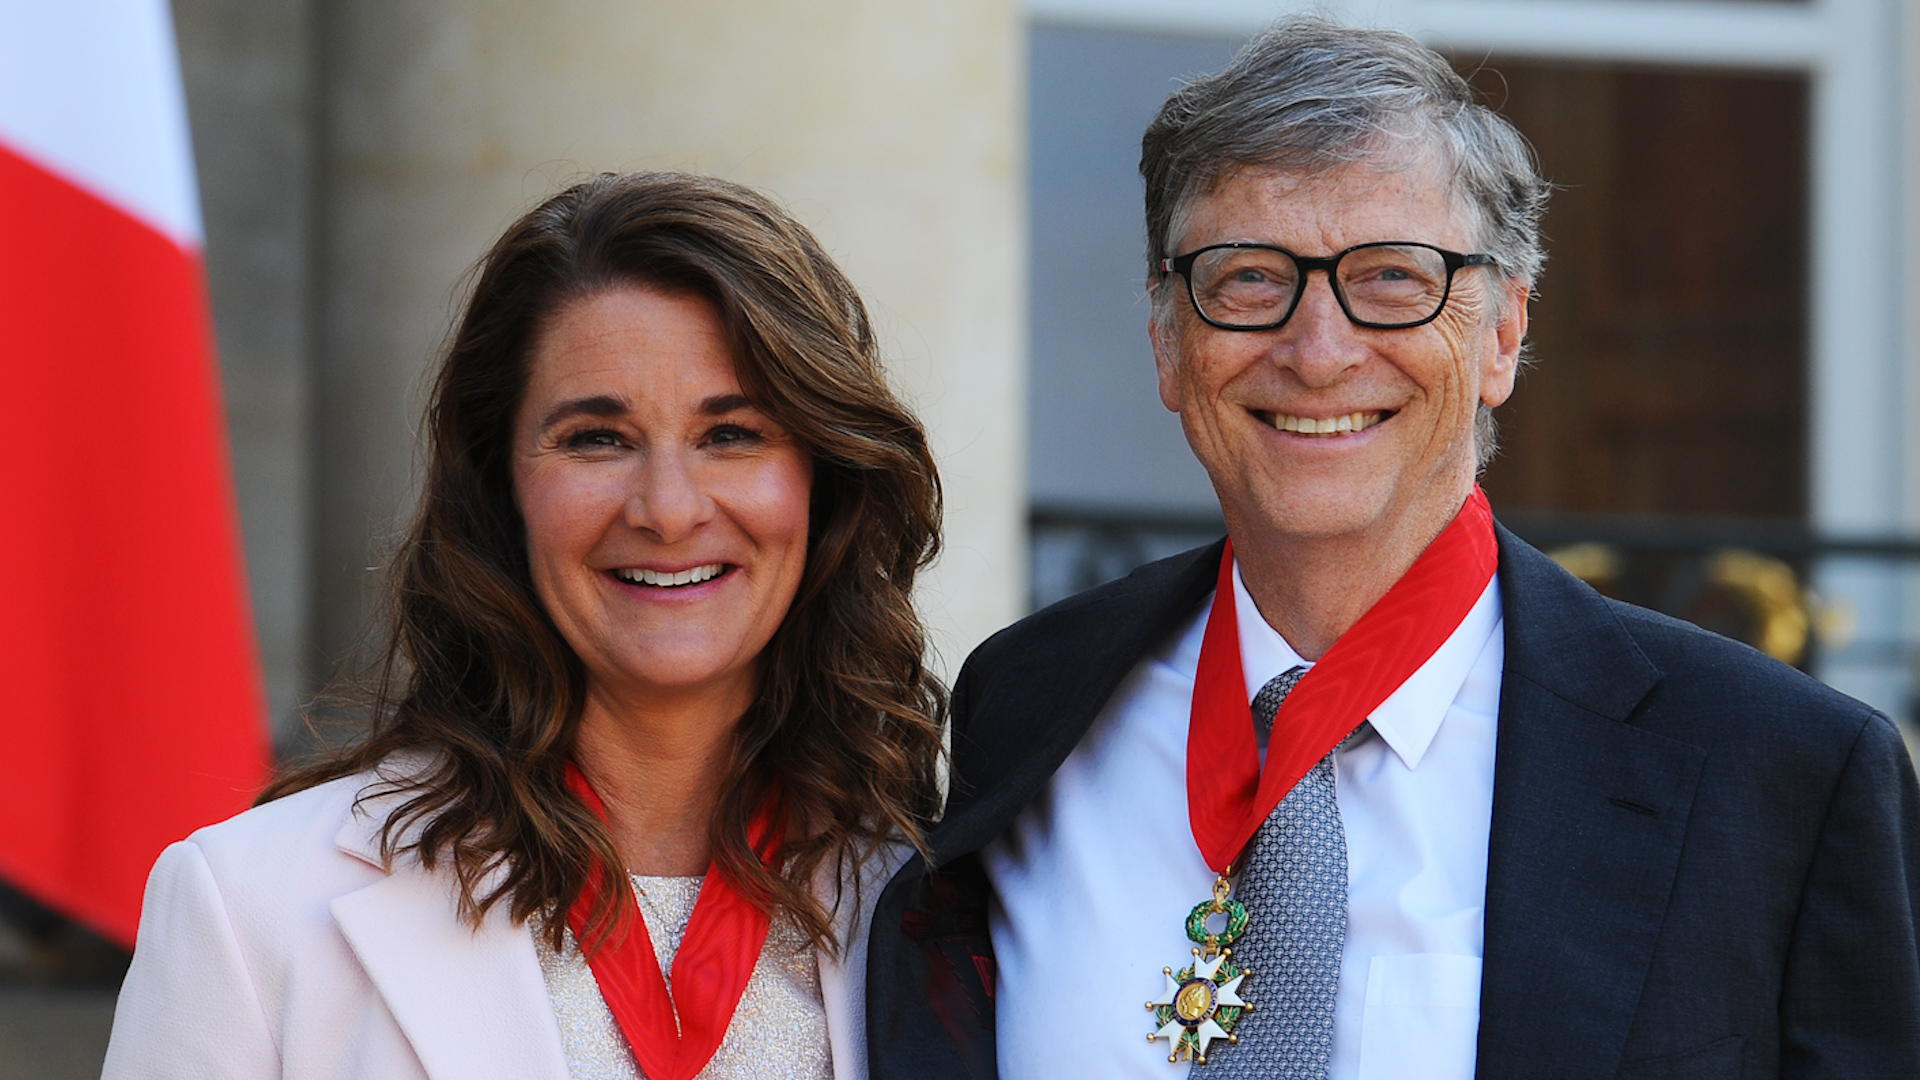 Melinda Gates, Bill Gates are posing for a picture